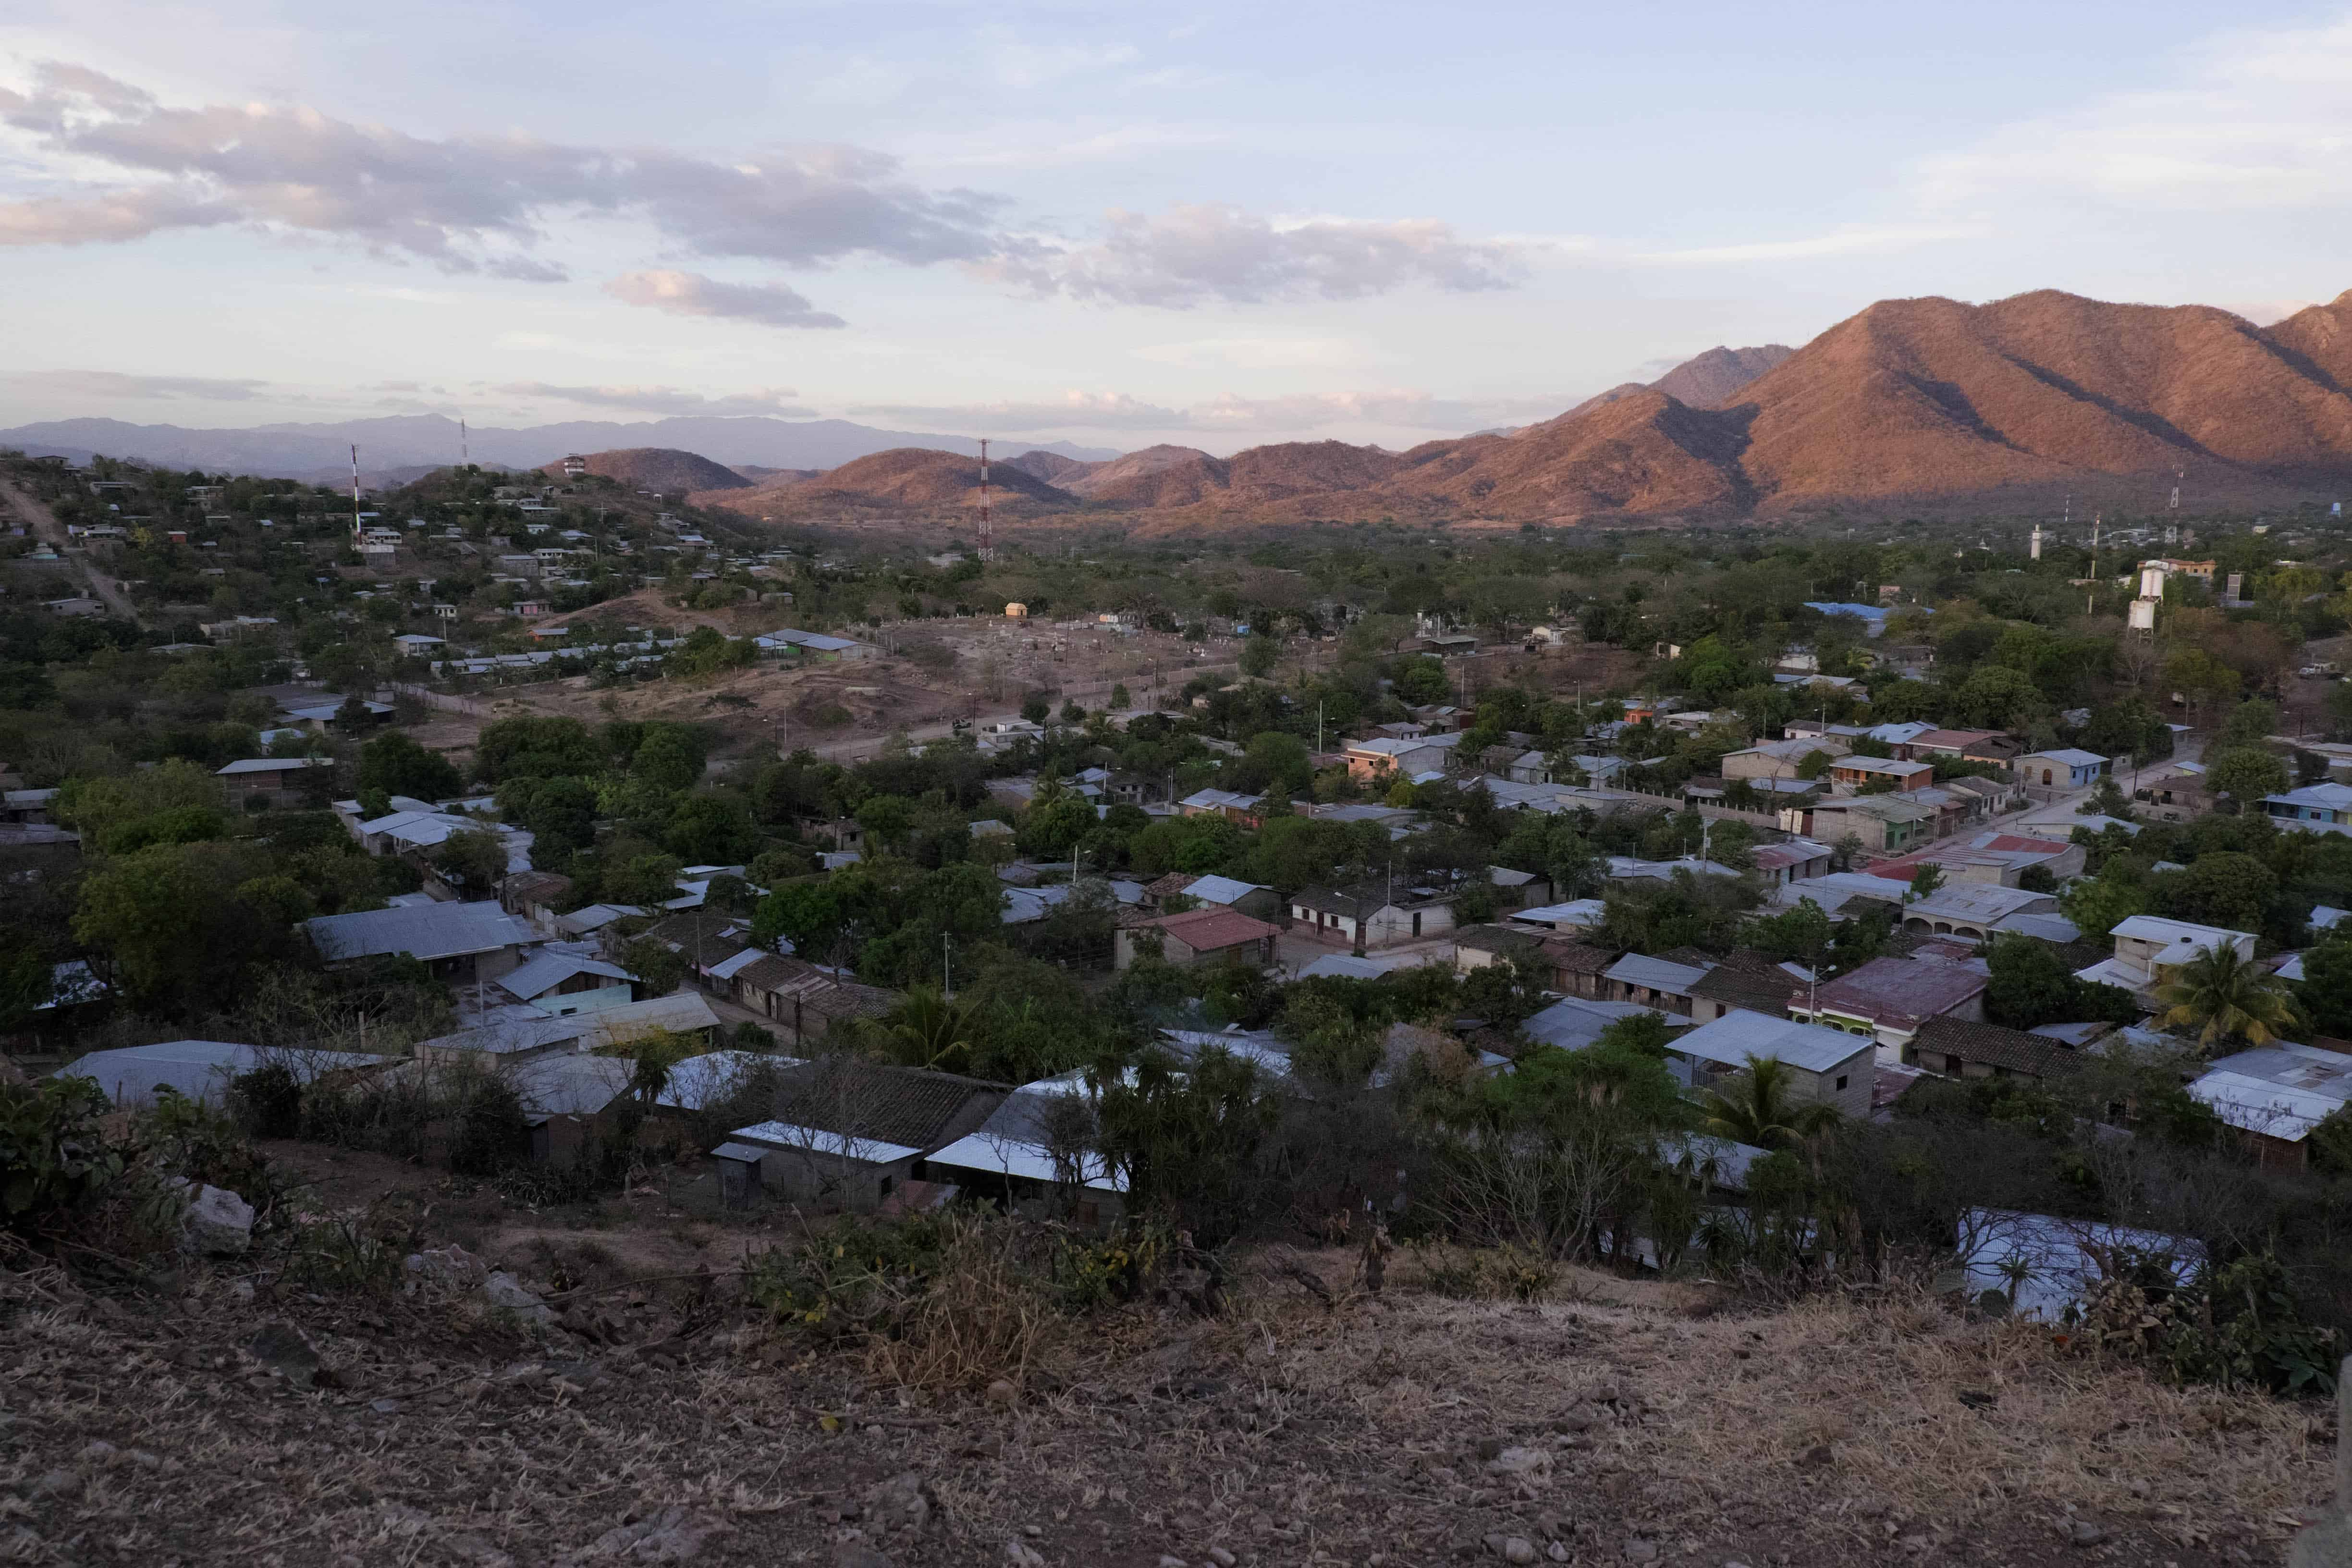 Overlooking the town of Somoto, Nicaragua, near the Honduran border, April 2015.